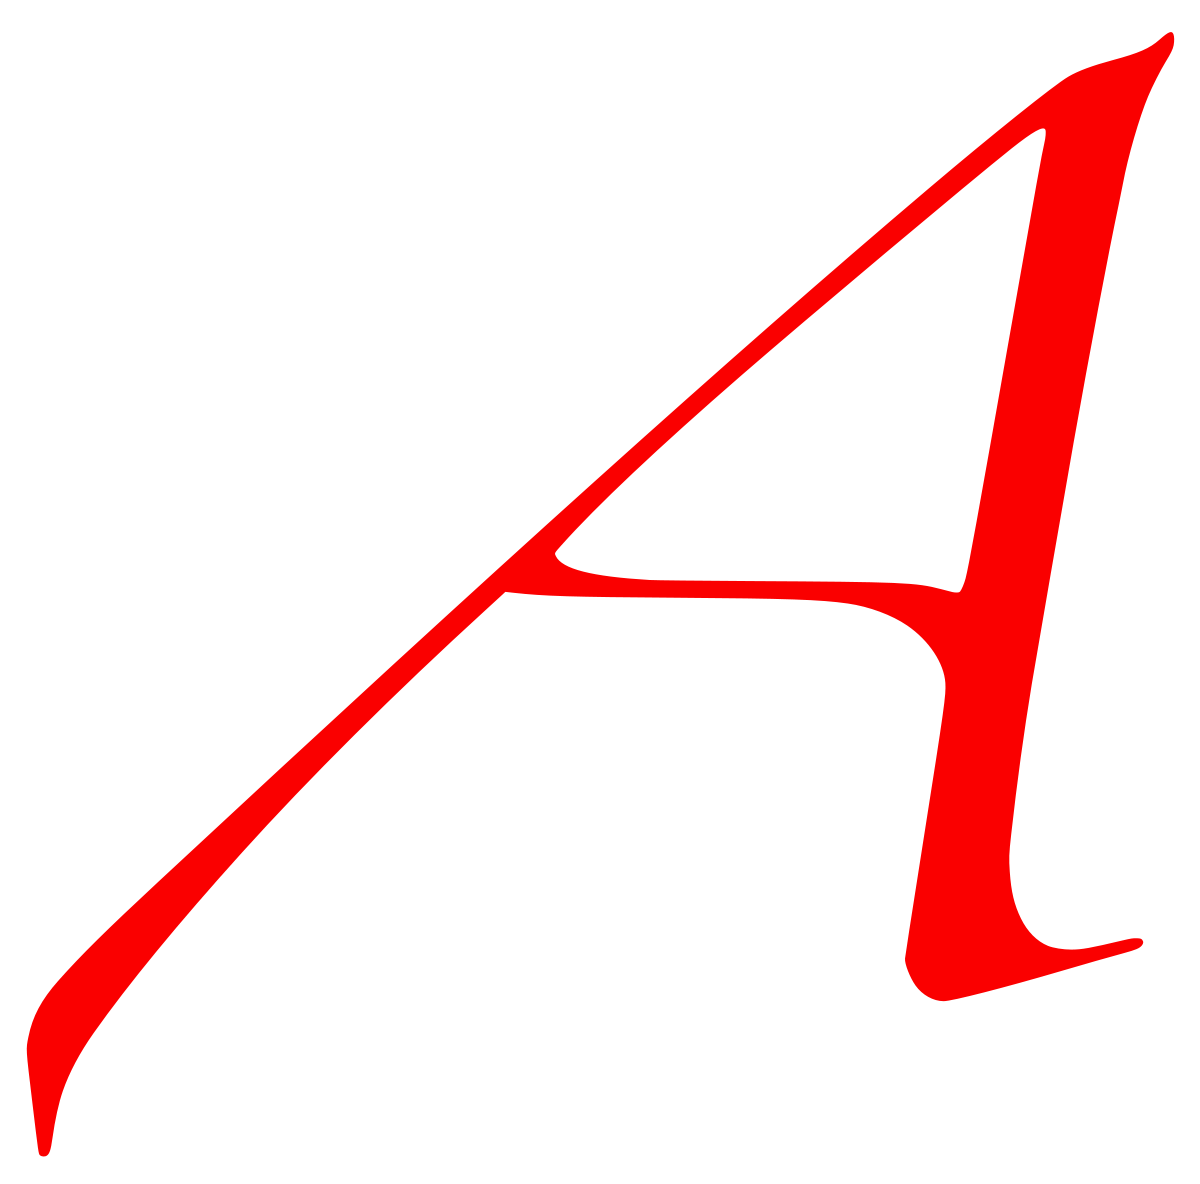 the scarlet letter png